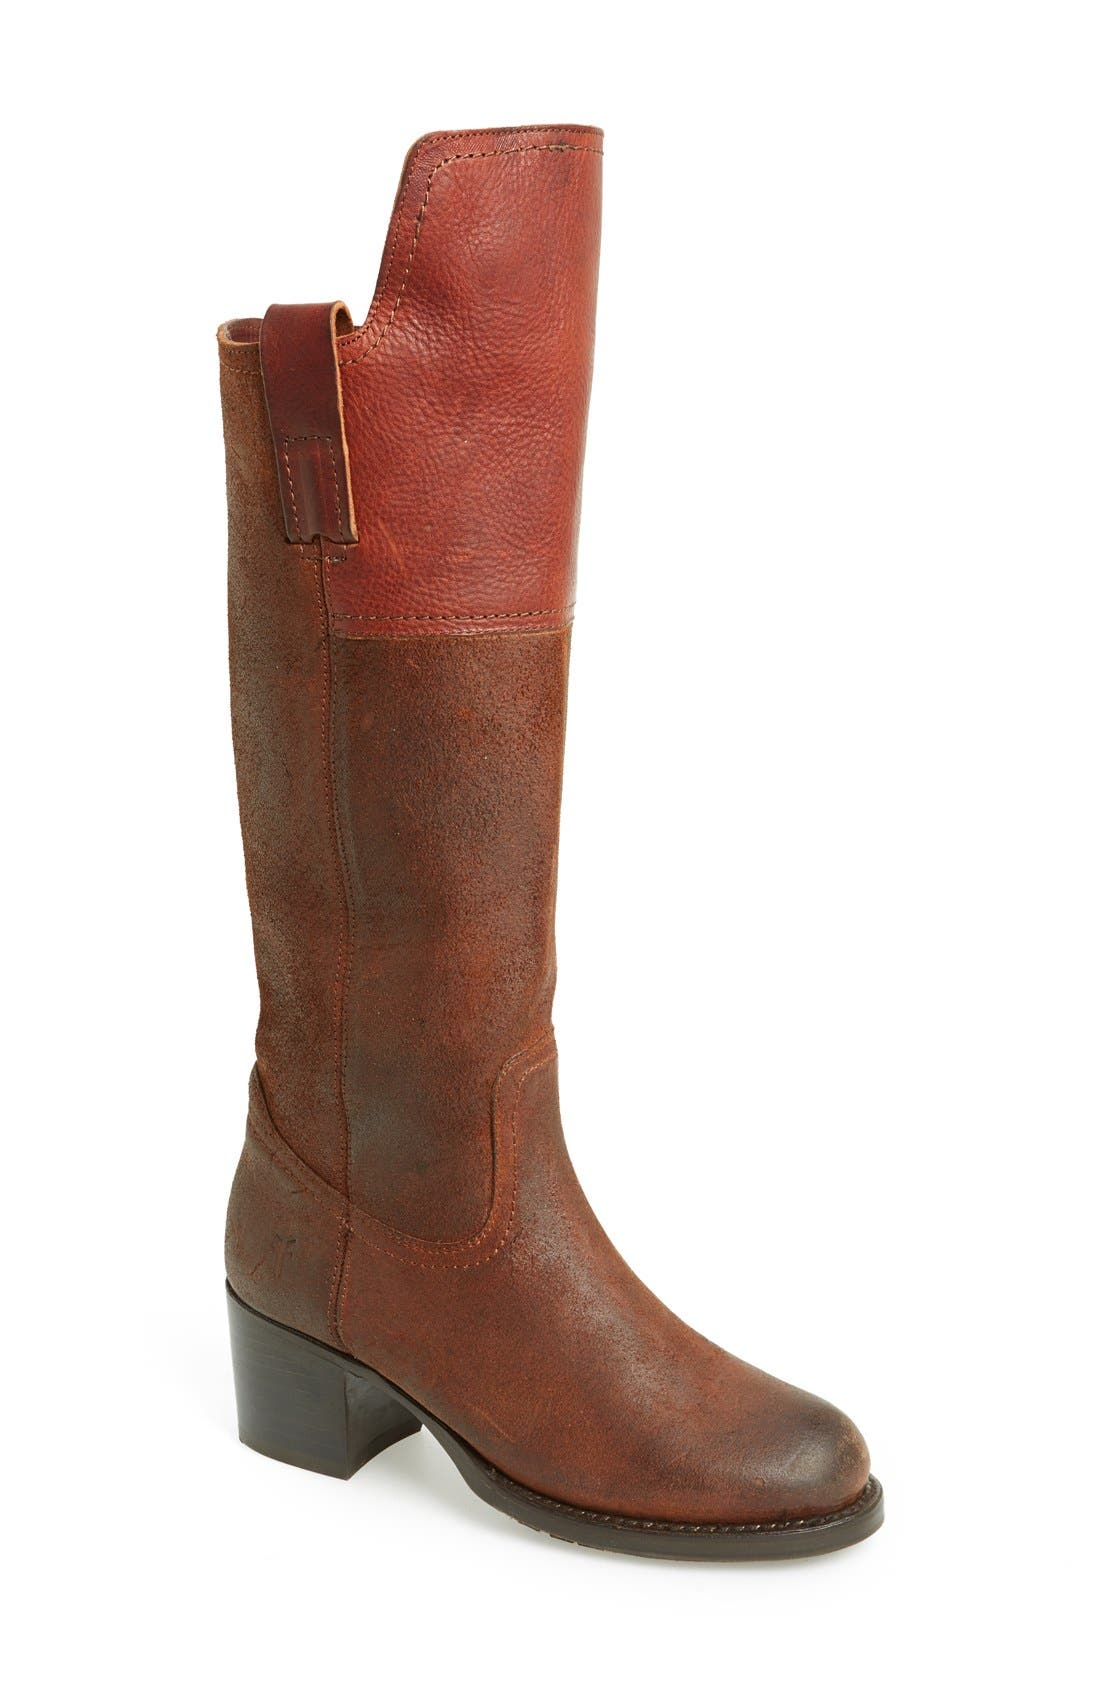 Main Image - Frye 'Autumn Shield' Tall Suede & Leather Boot (Women)